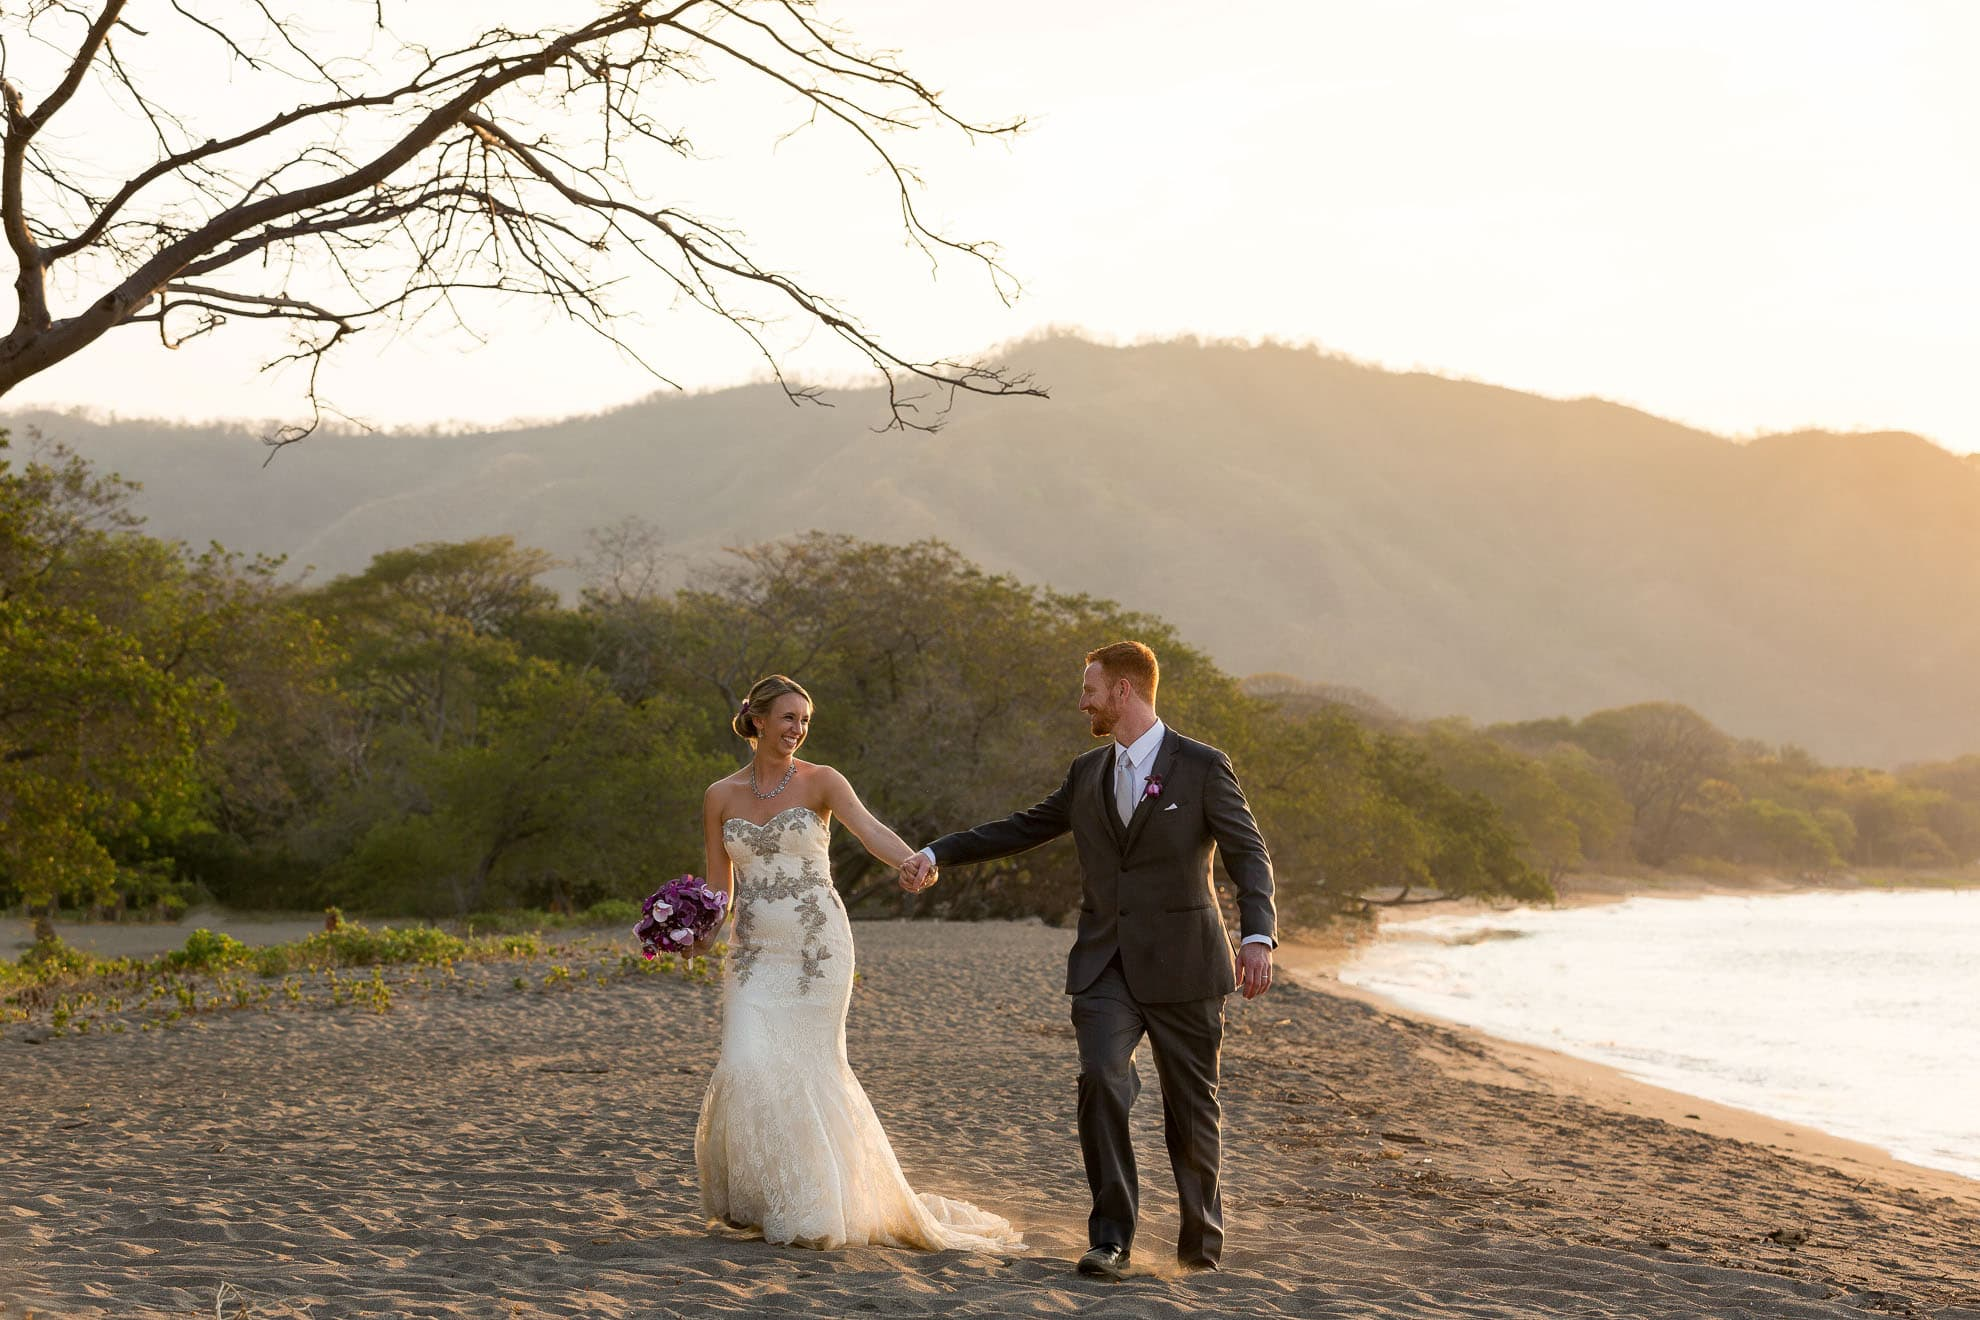 destination wedding riu palace guanacaste costa rica